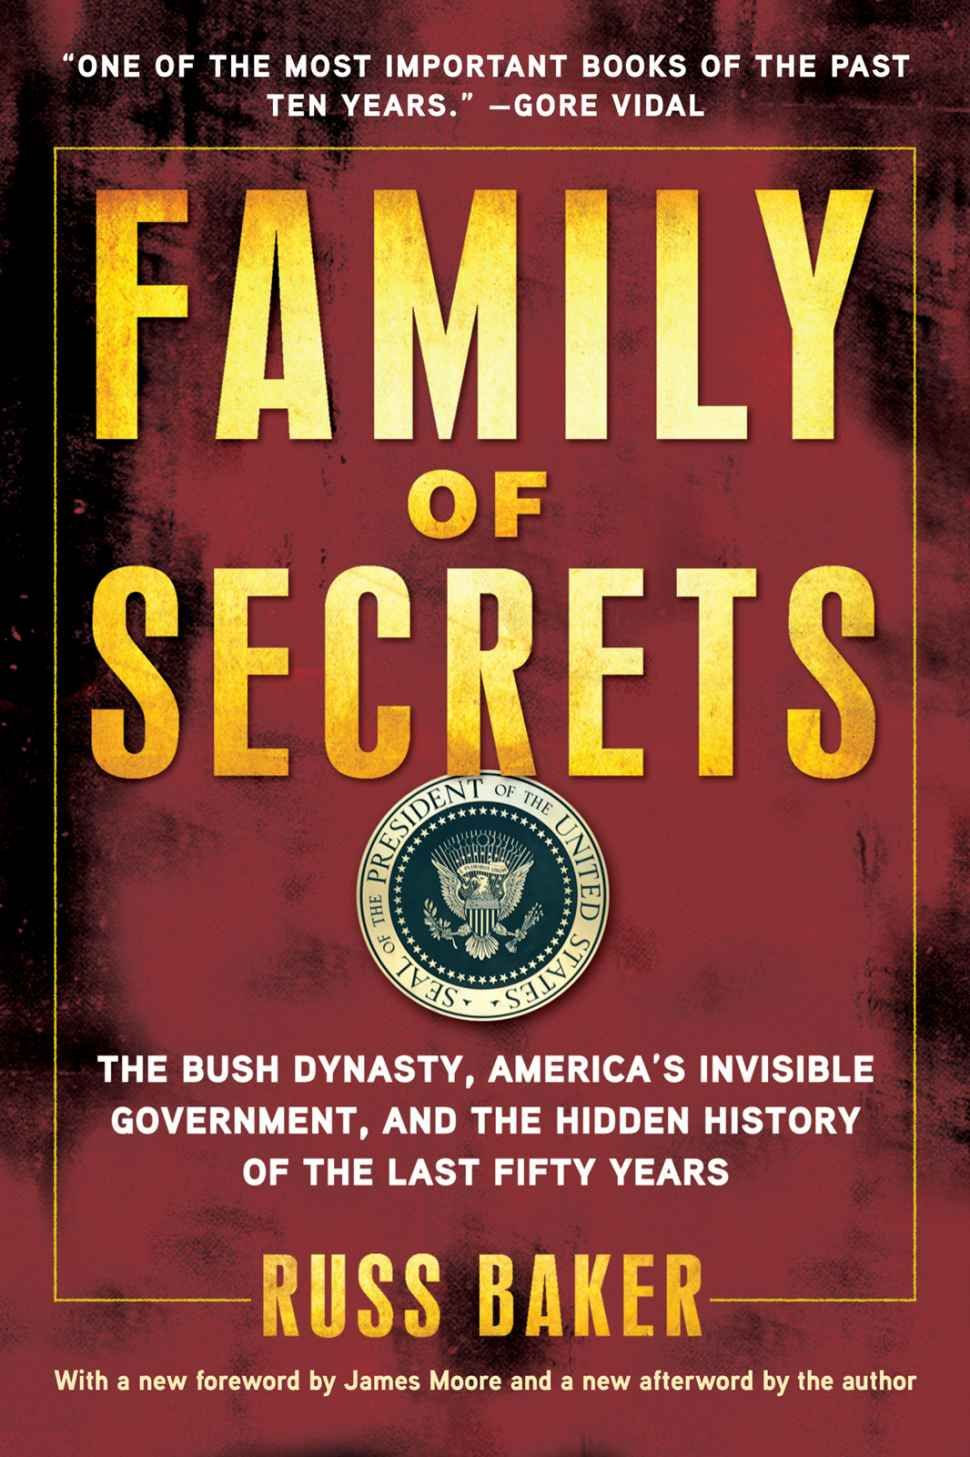 Family of Secrets: The Bush Dynasty, America's Invisible Government, and the Hidden History of the Last Fifty Years (9781608190065): Russ Baker: Books